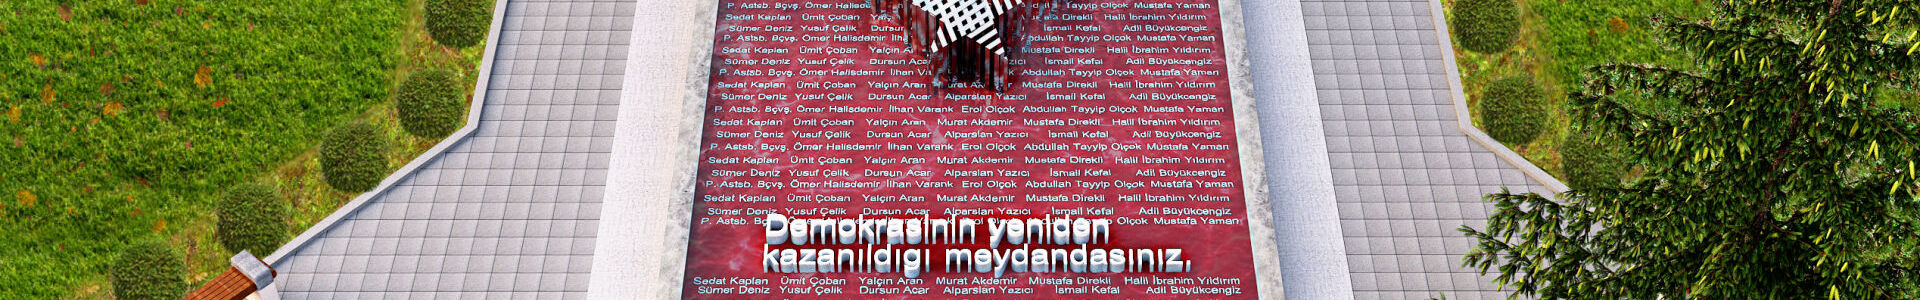 July 15 Martyrs of Democracy Park